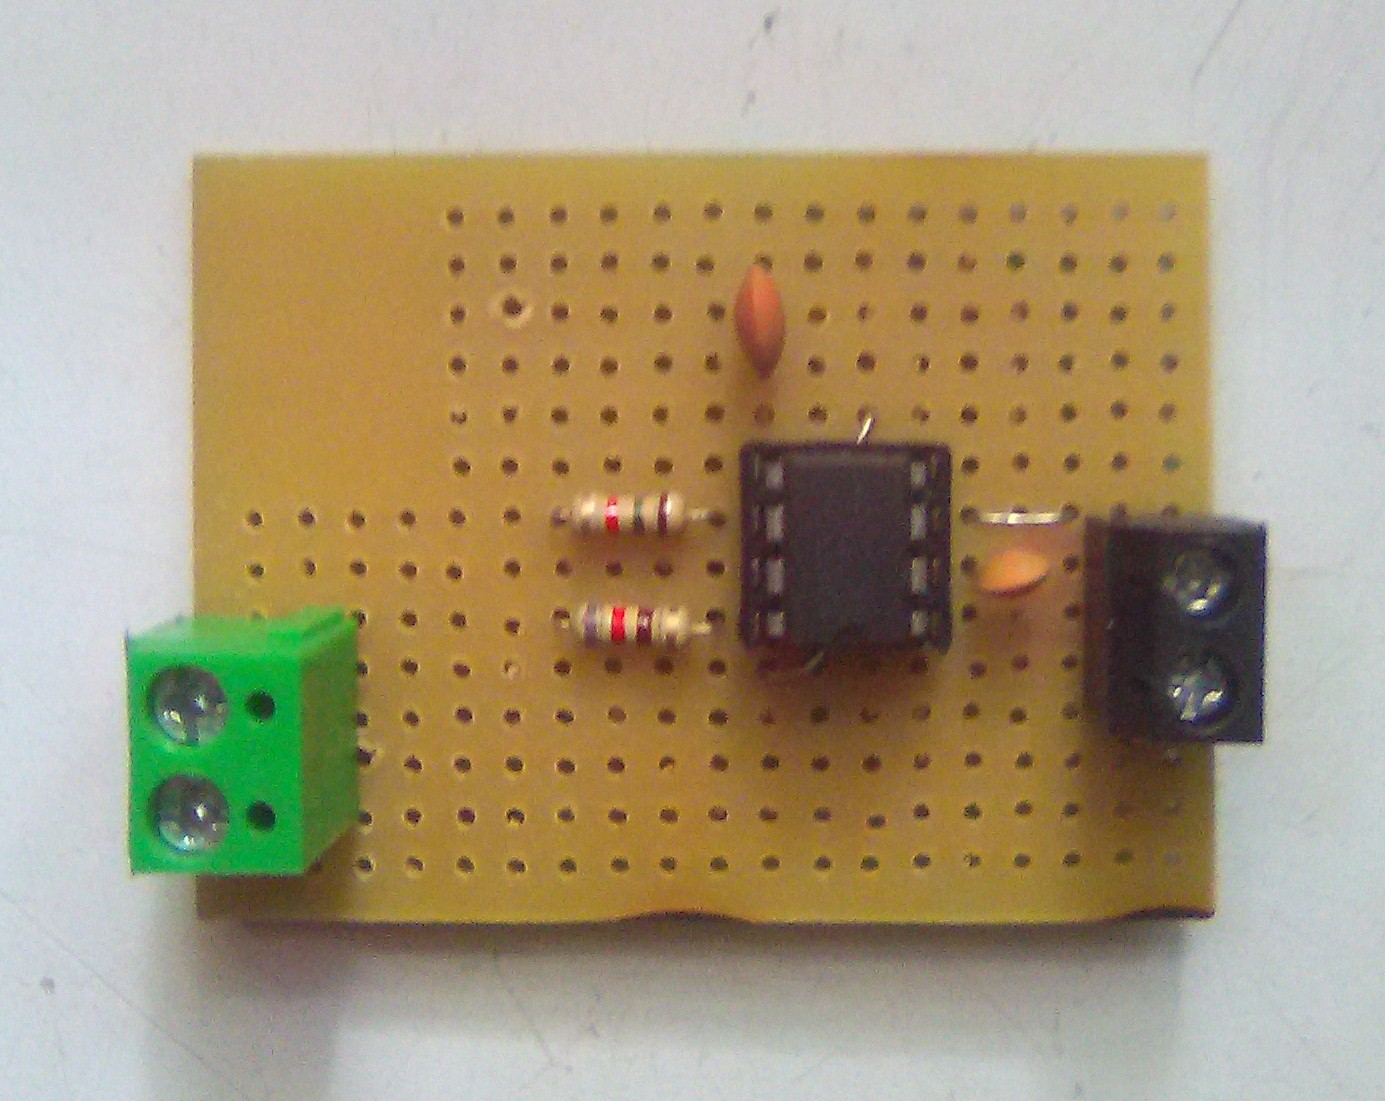 Picture of Assembling the Oscillator Circuit in a PCB